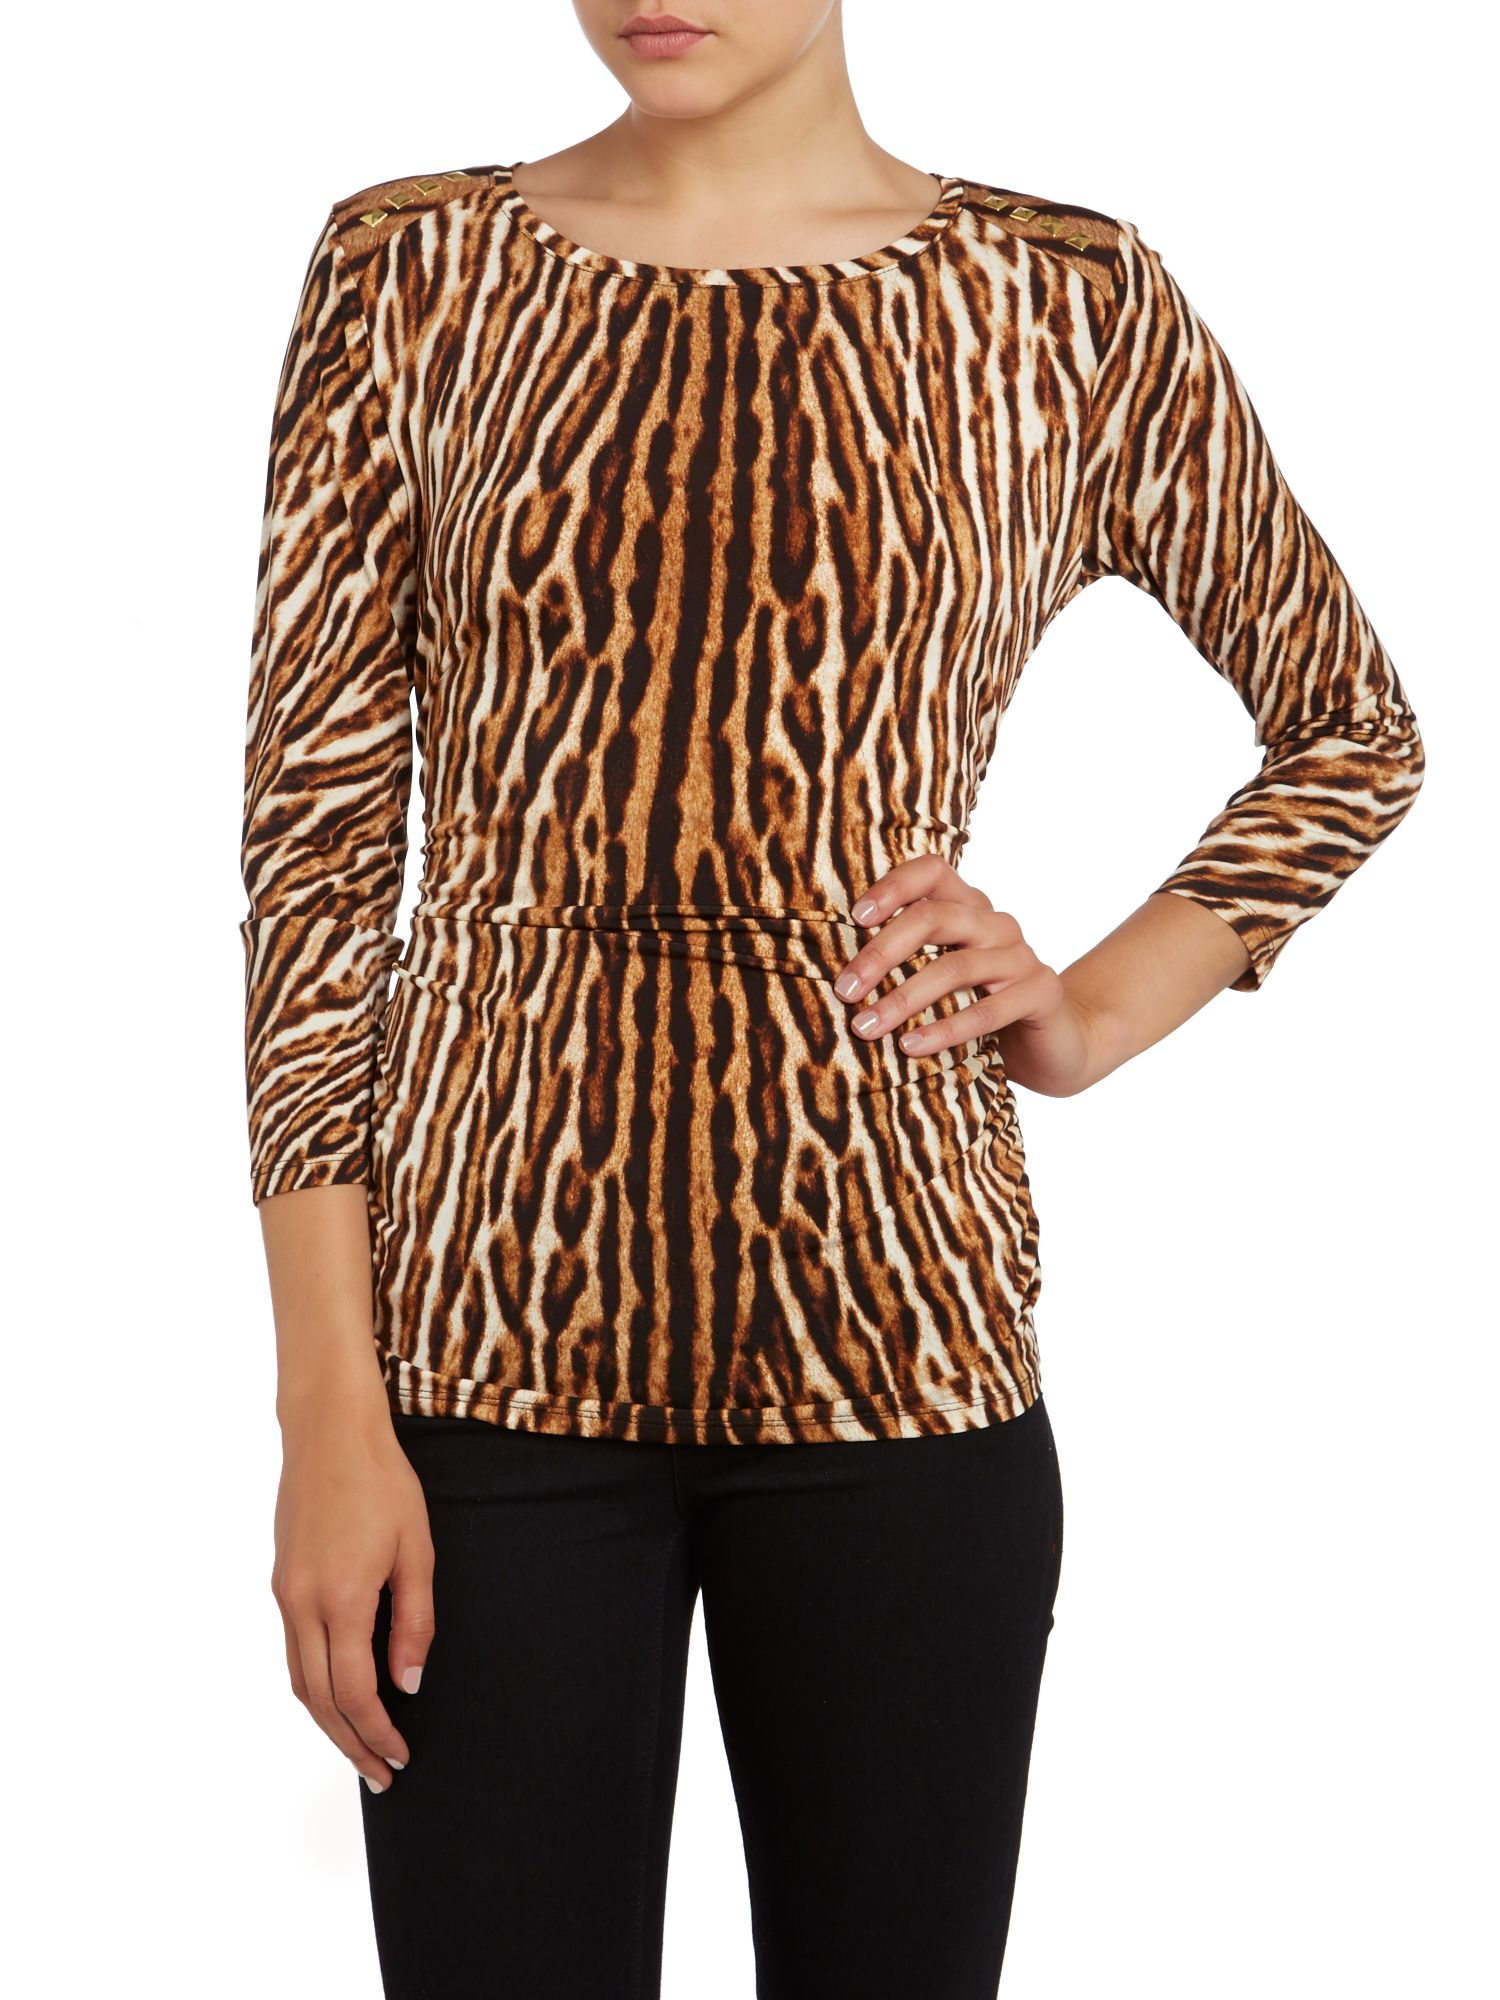 3/4 sleeved animal print top